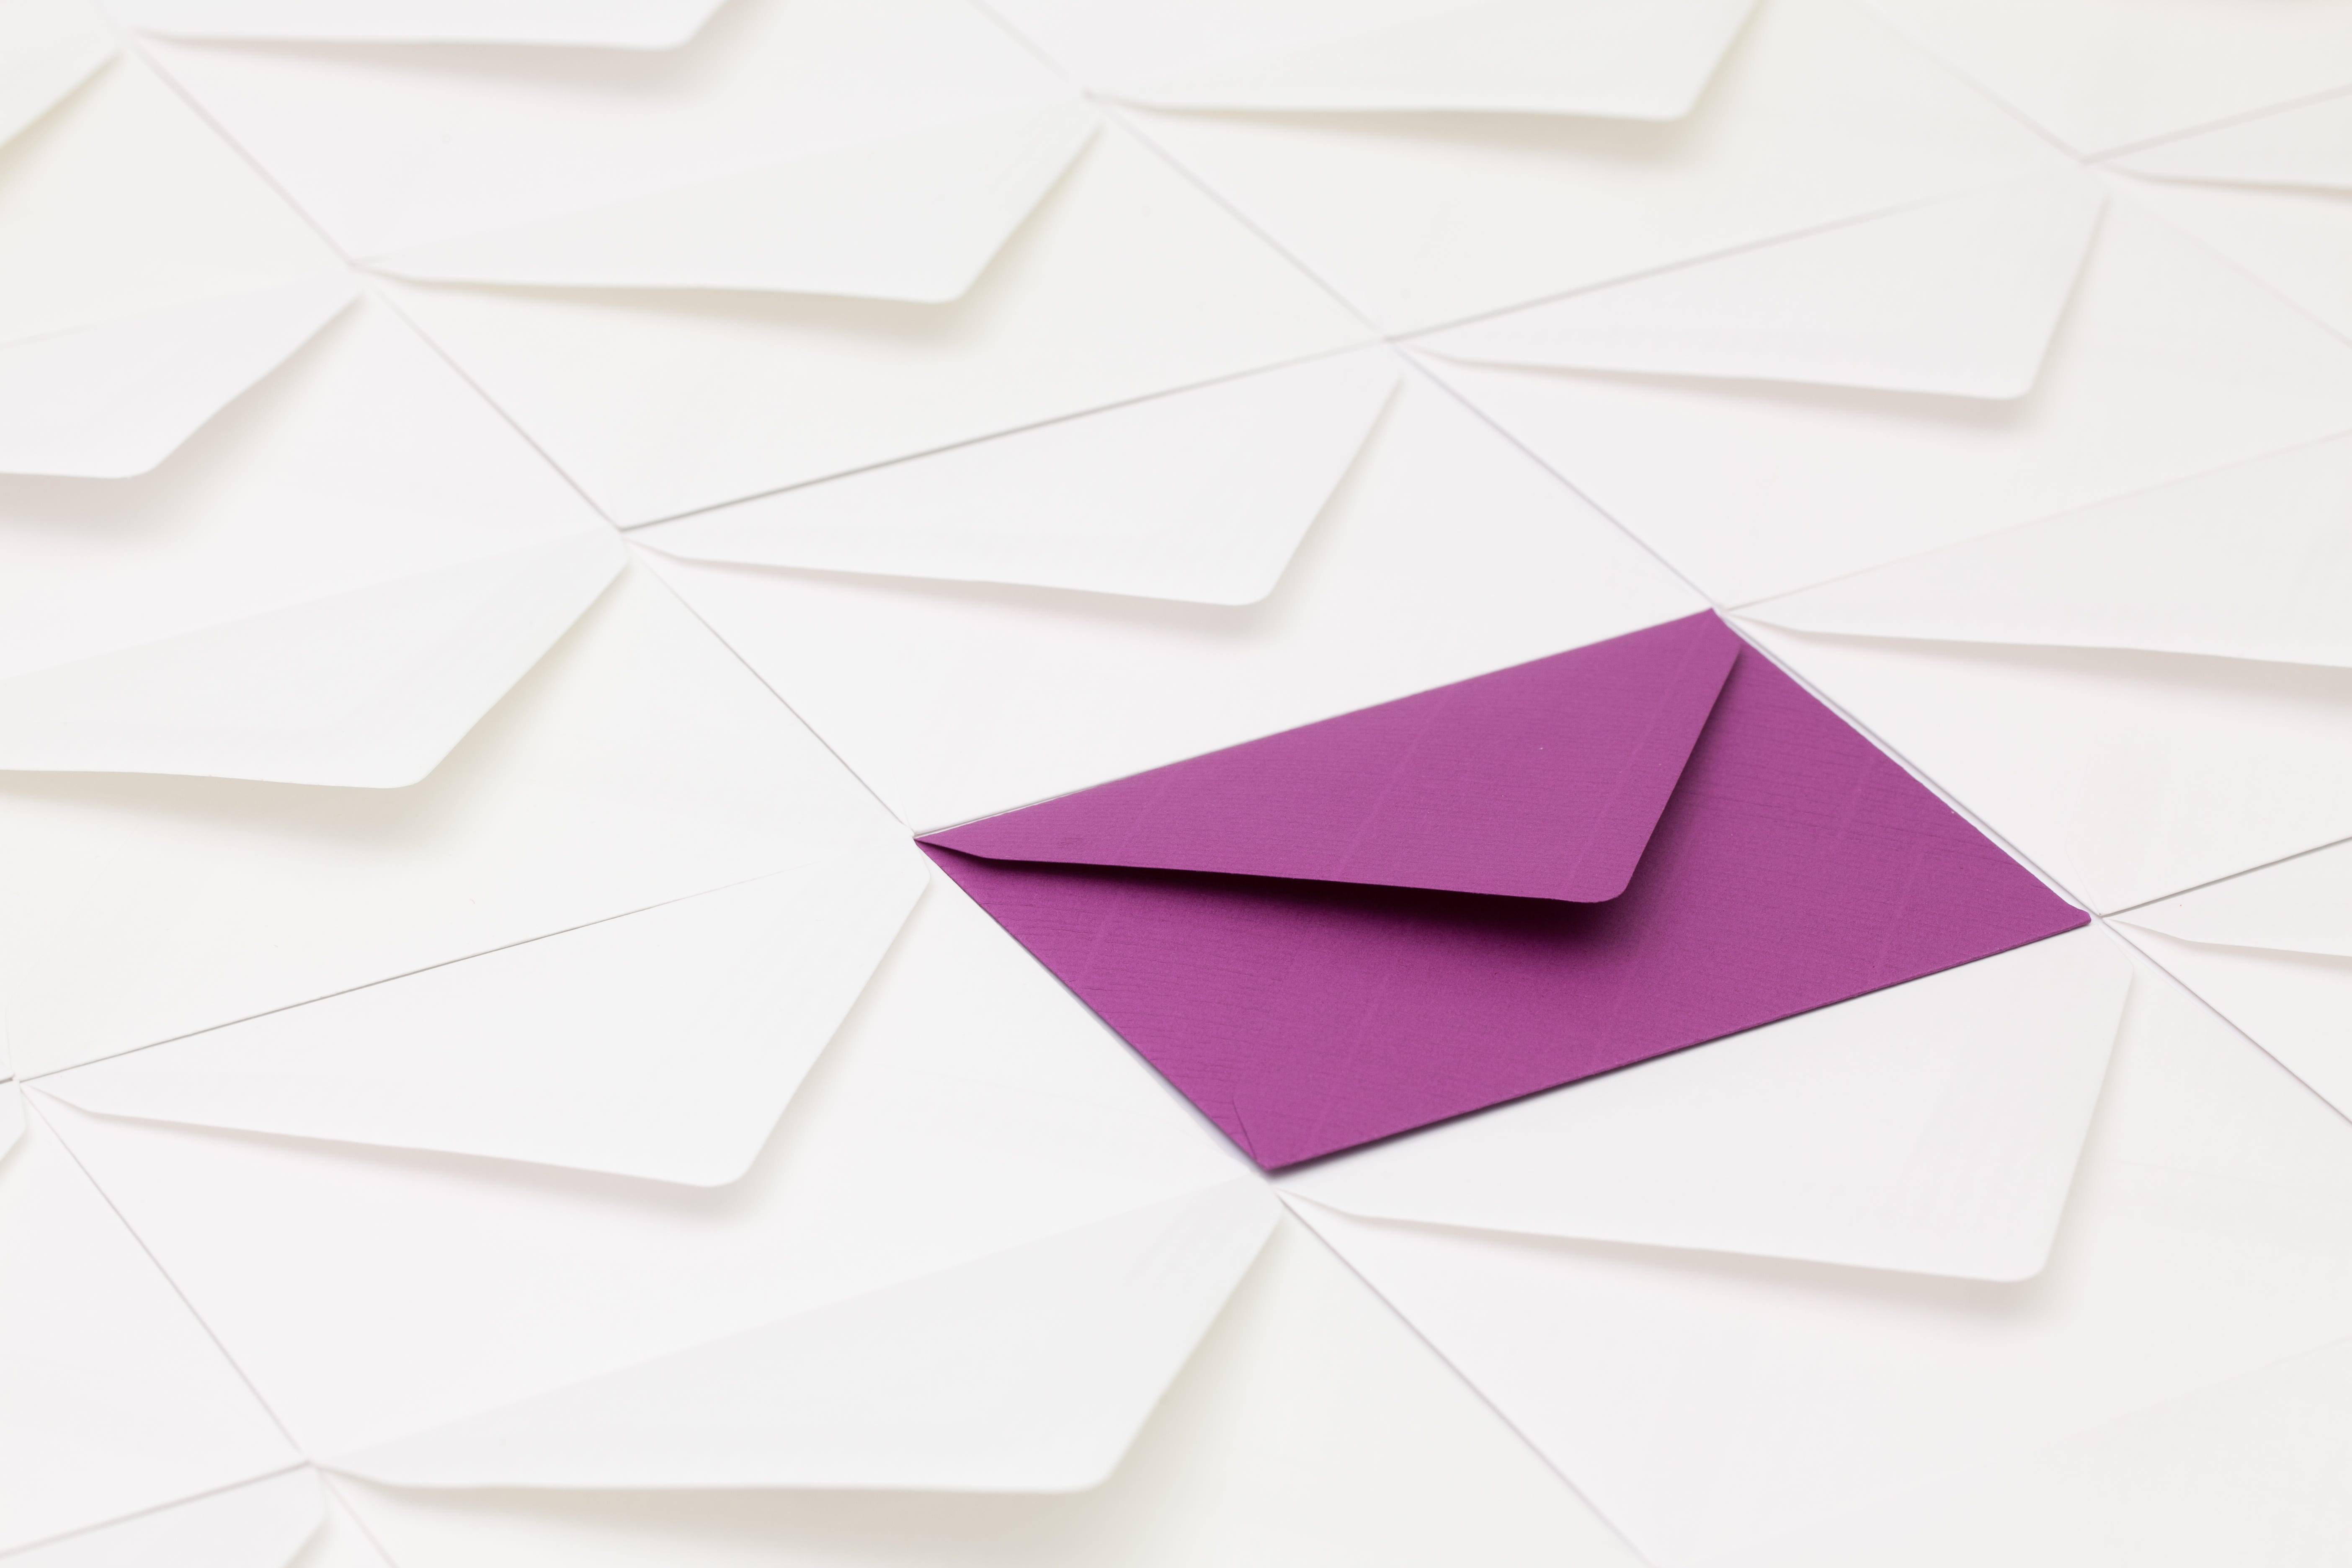 Composition with white envelopes and one purple envelope on the table.